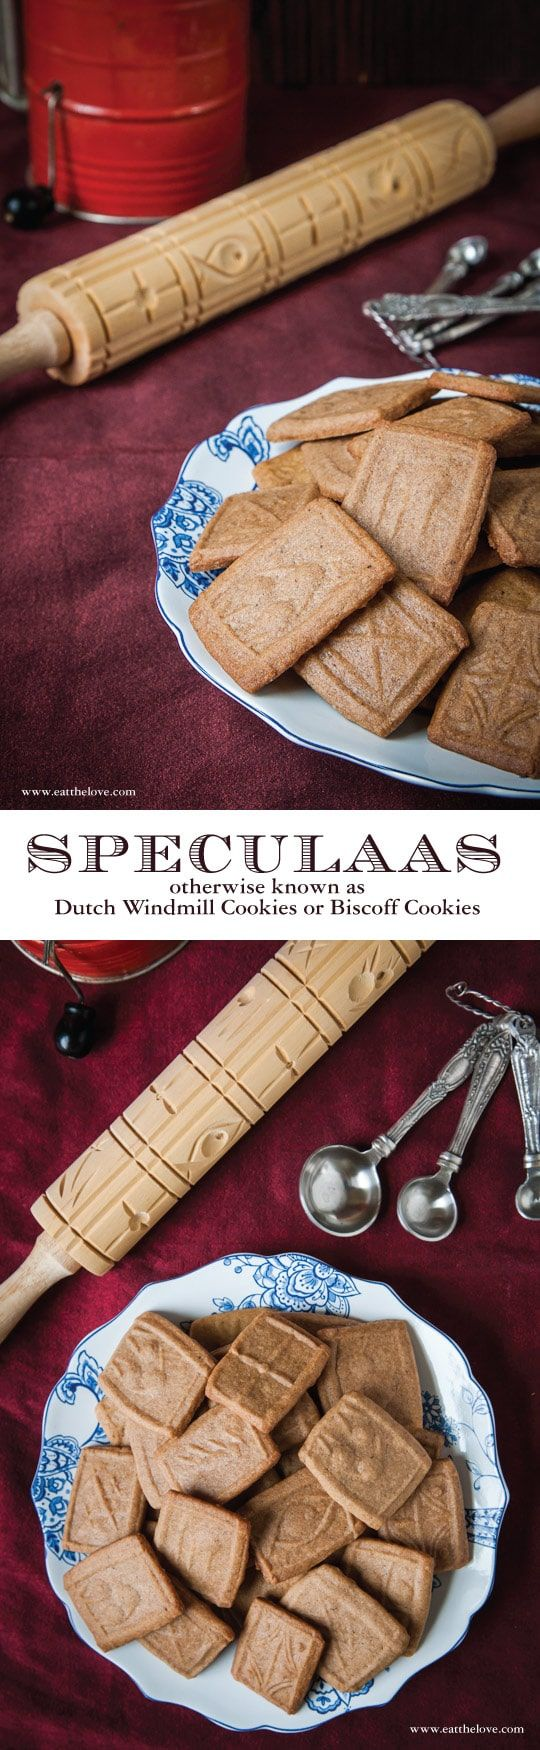 Speculoos cookies, sometimes spelled Speculaas cookies, or called Biscoff or Windmill cookies are traditional Dutch cookies served during the holidays. Photo and recipe by Irvin Lin of Eat the Love.